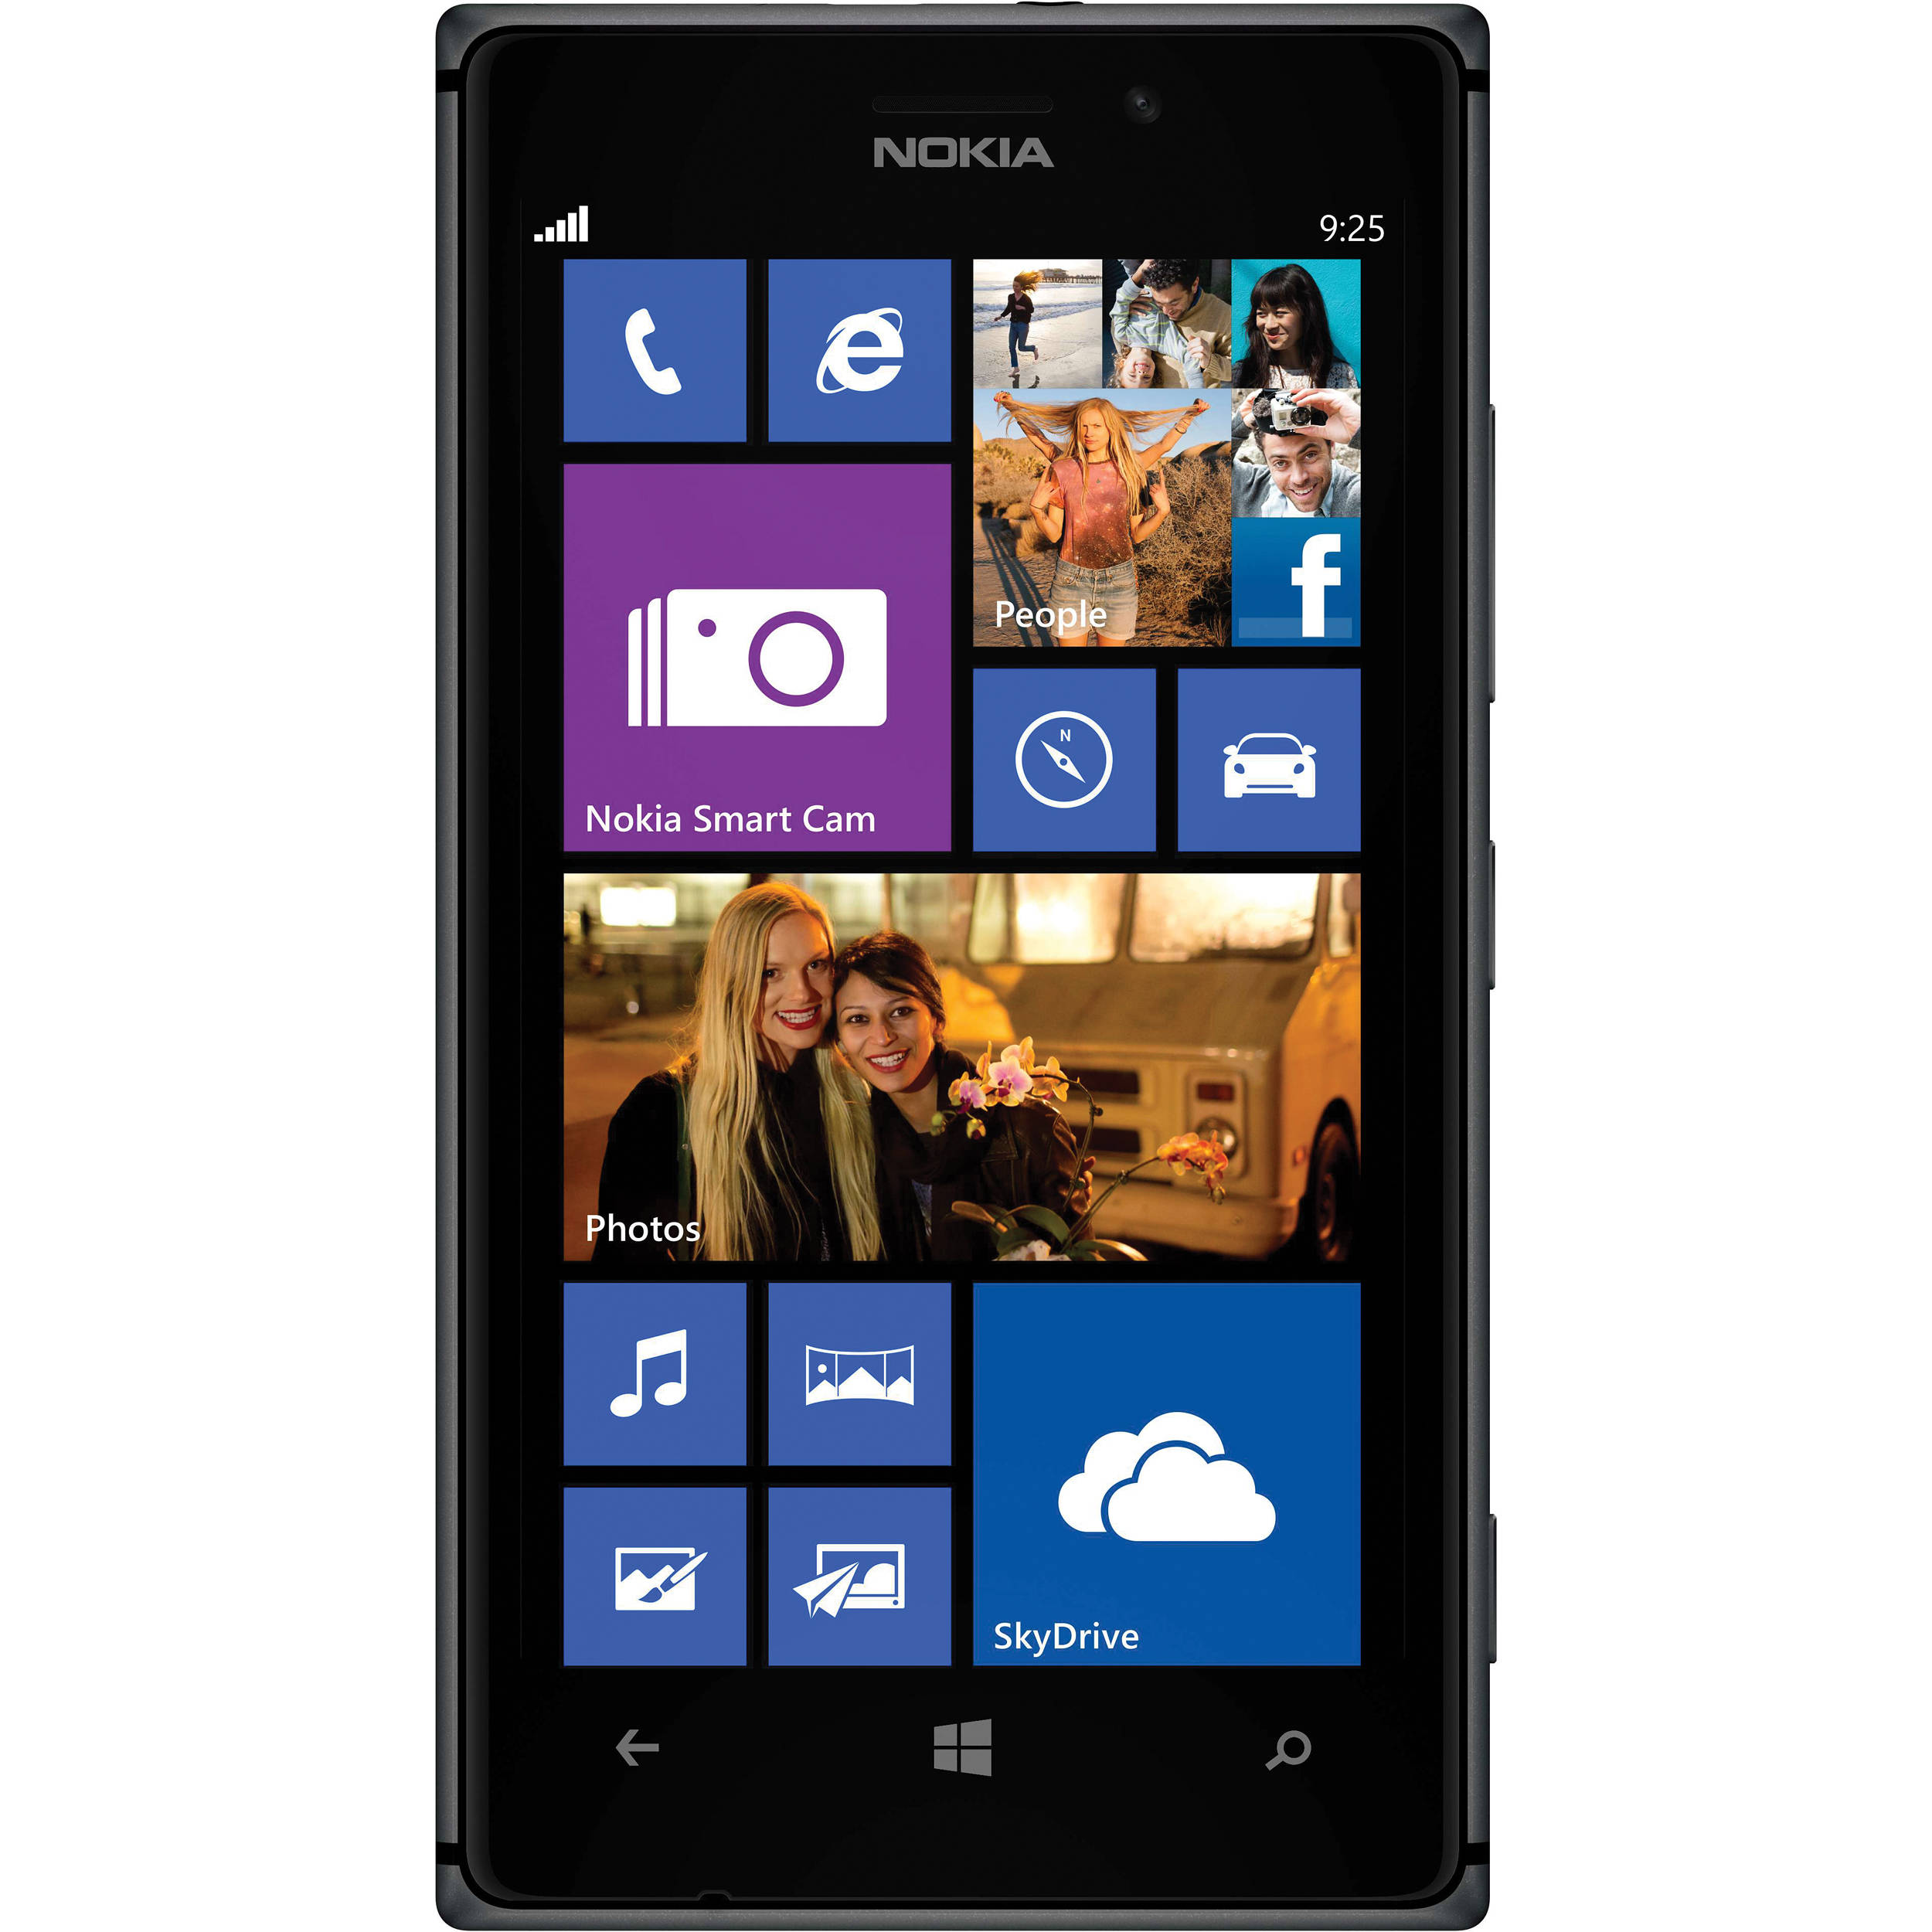 Smartphone Nokia Lumia 720: characteristics, instructions, settings, reviews 20